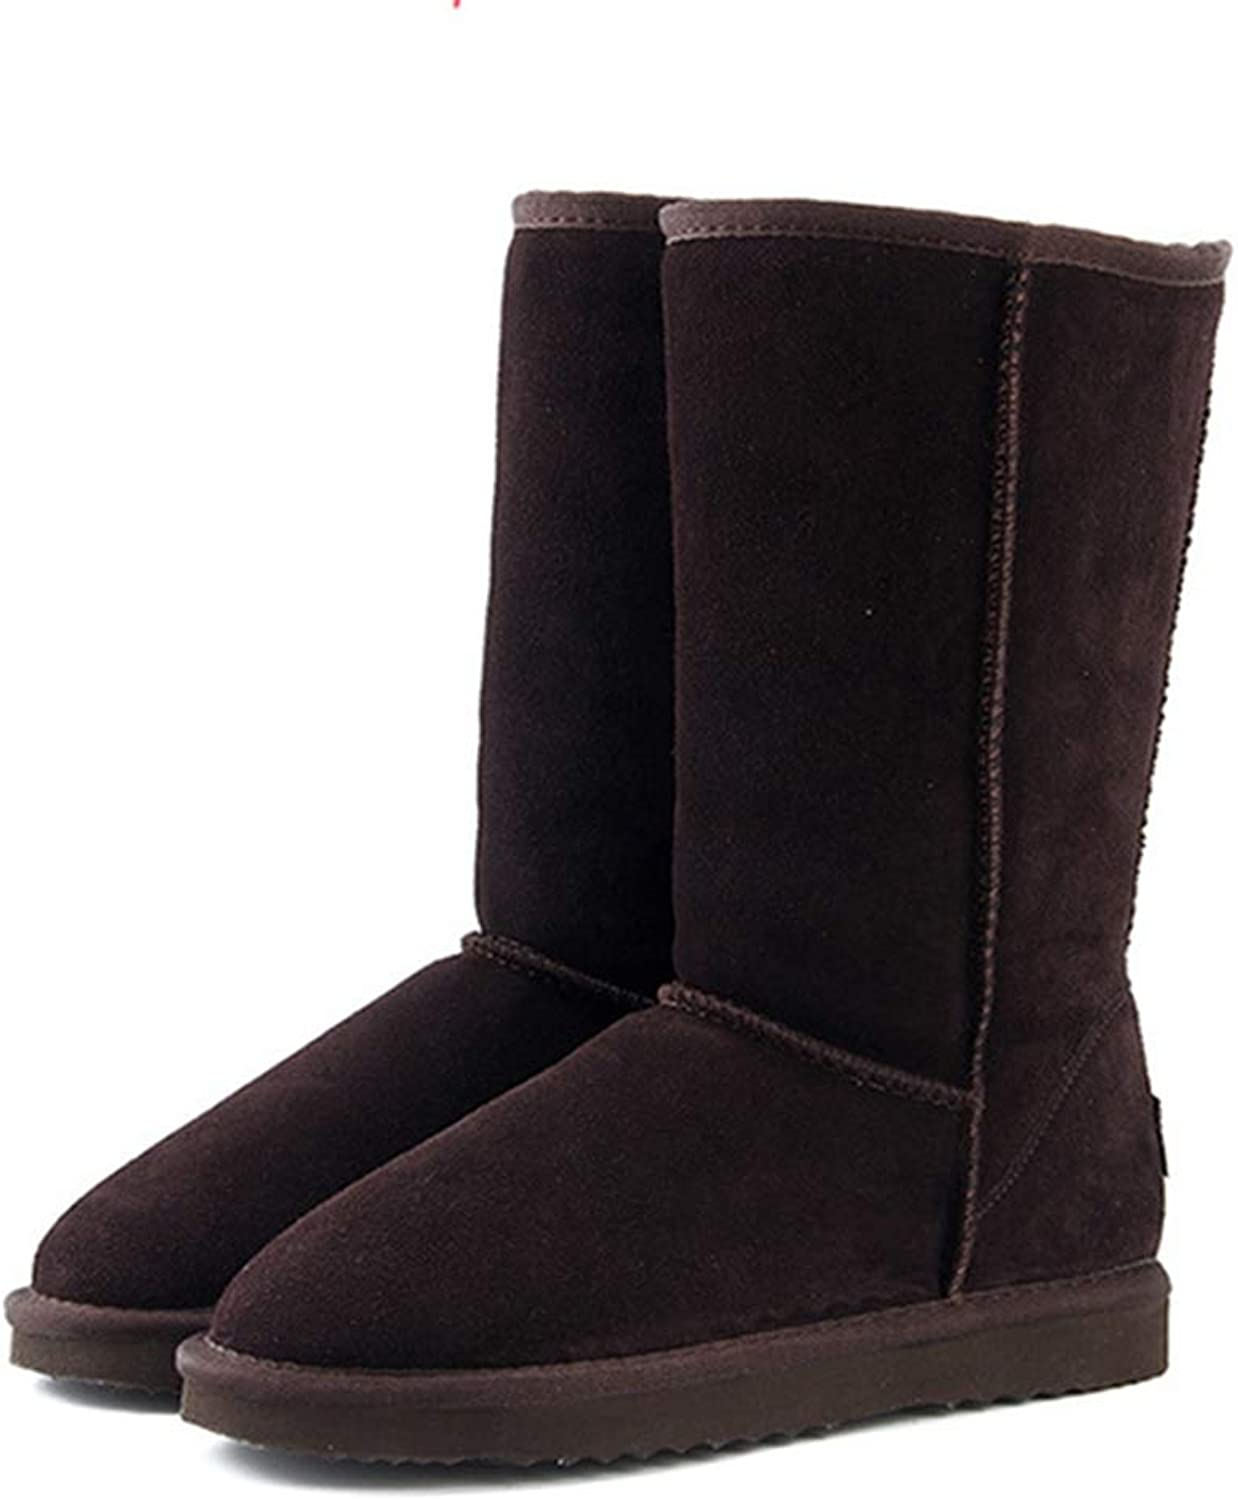 Fay Waters Women's Winter Warm Sheepskin Leather Fur Lined Short High Tall Wool Thigh Snow Boots